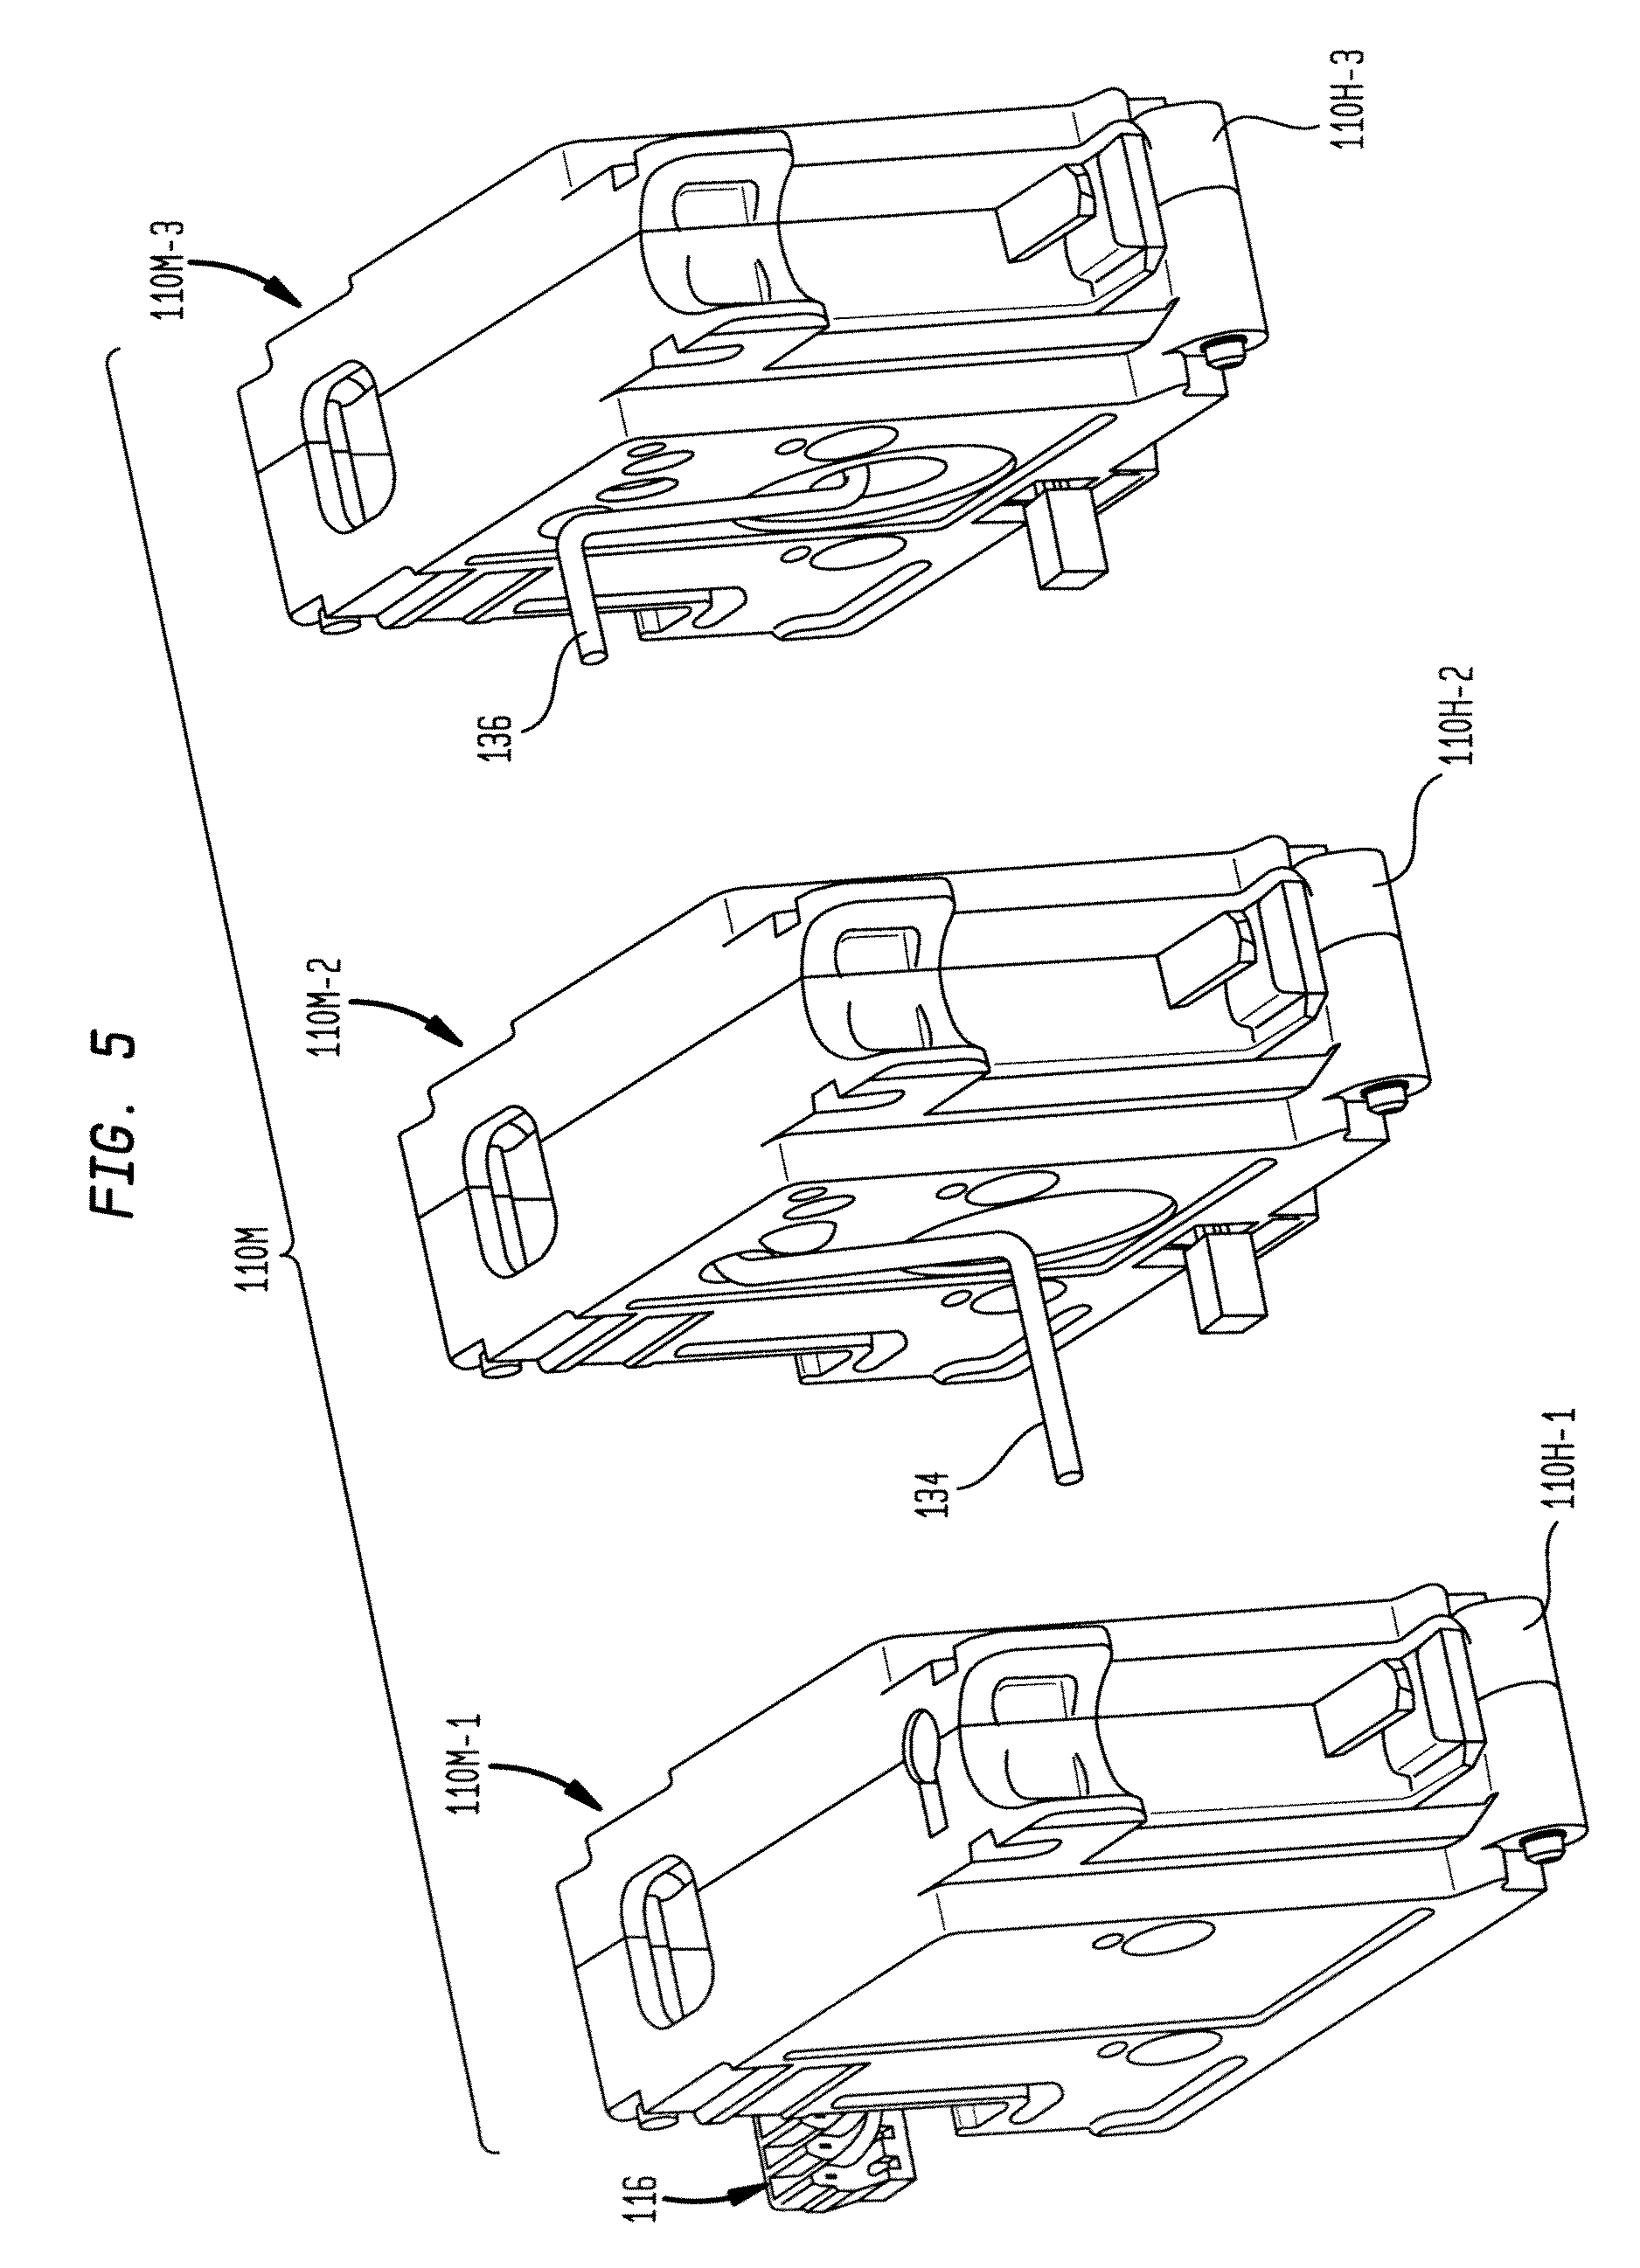 Patent Us7812695 Tie Bar For Three Pole Switching Device Google Plunger Additionally Remote Control Light Switch Circuit Further Drawing